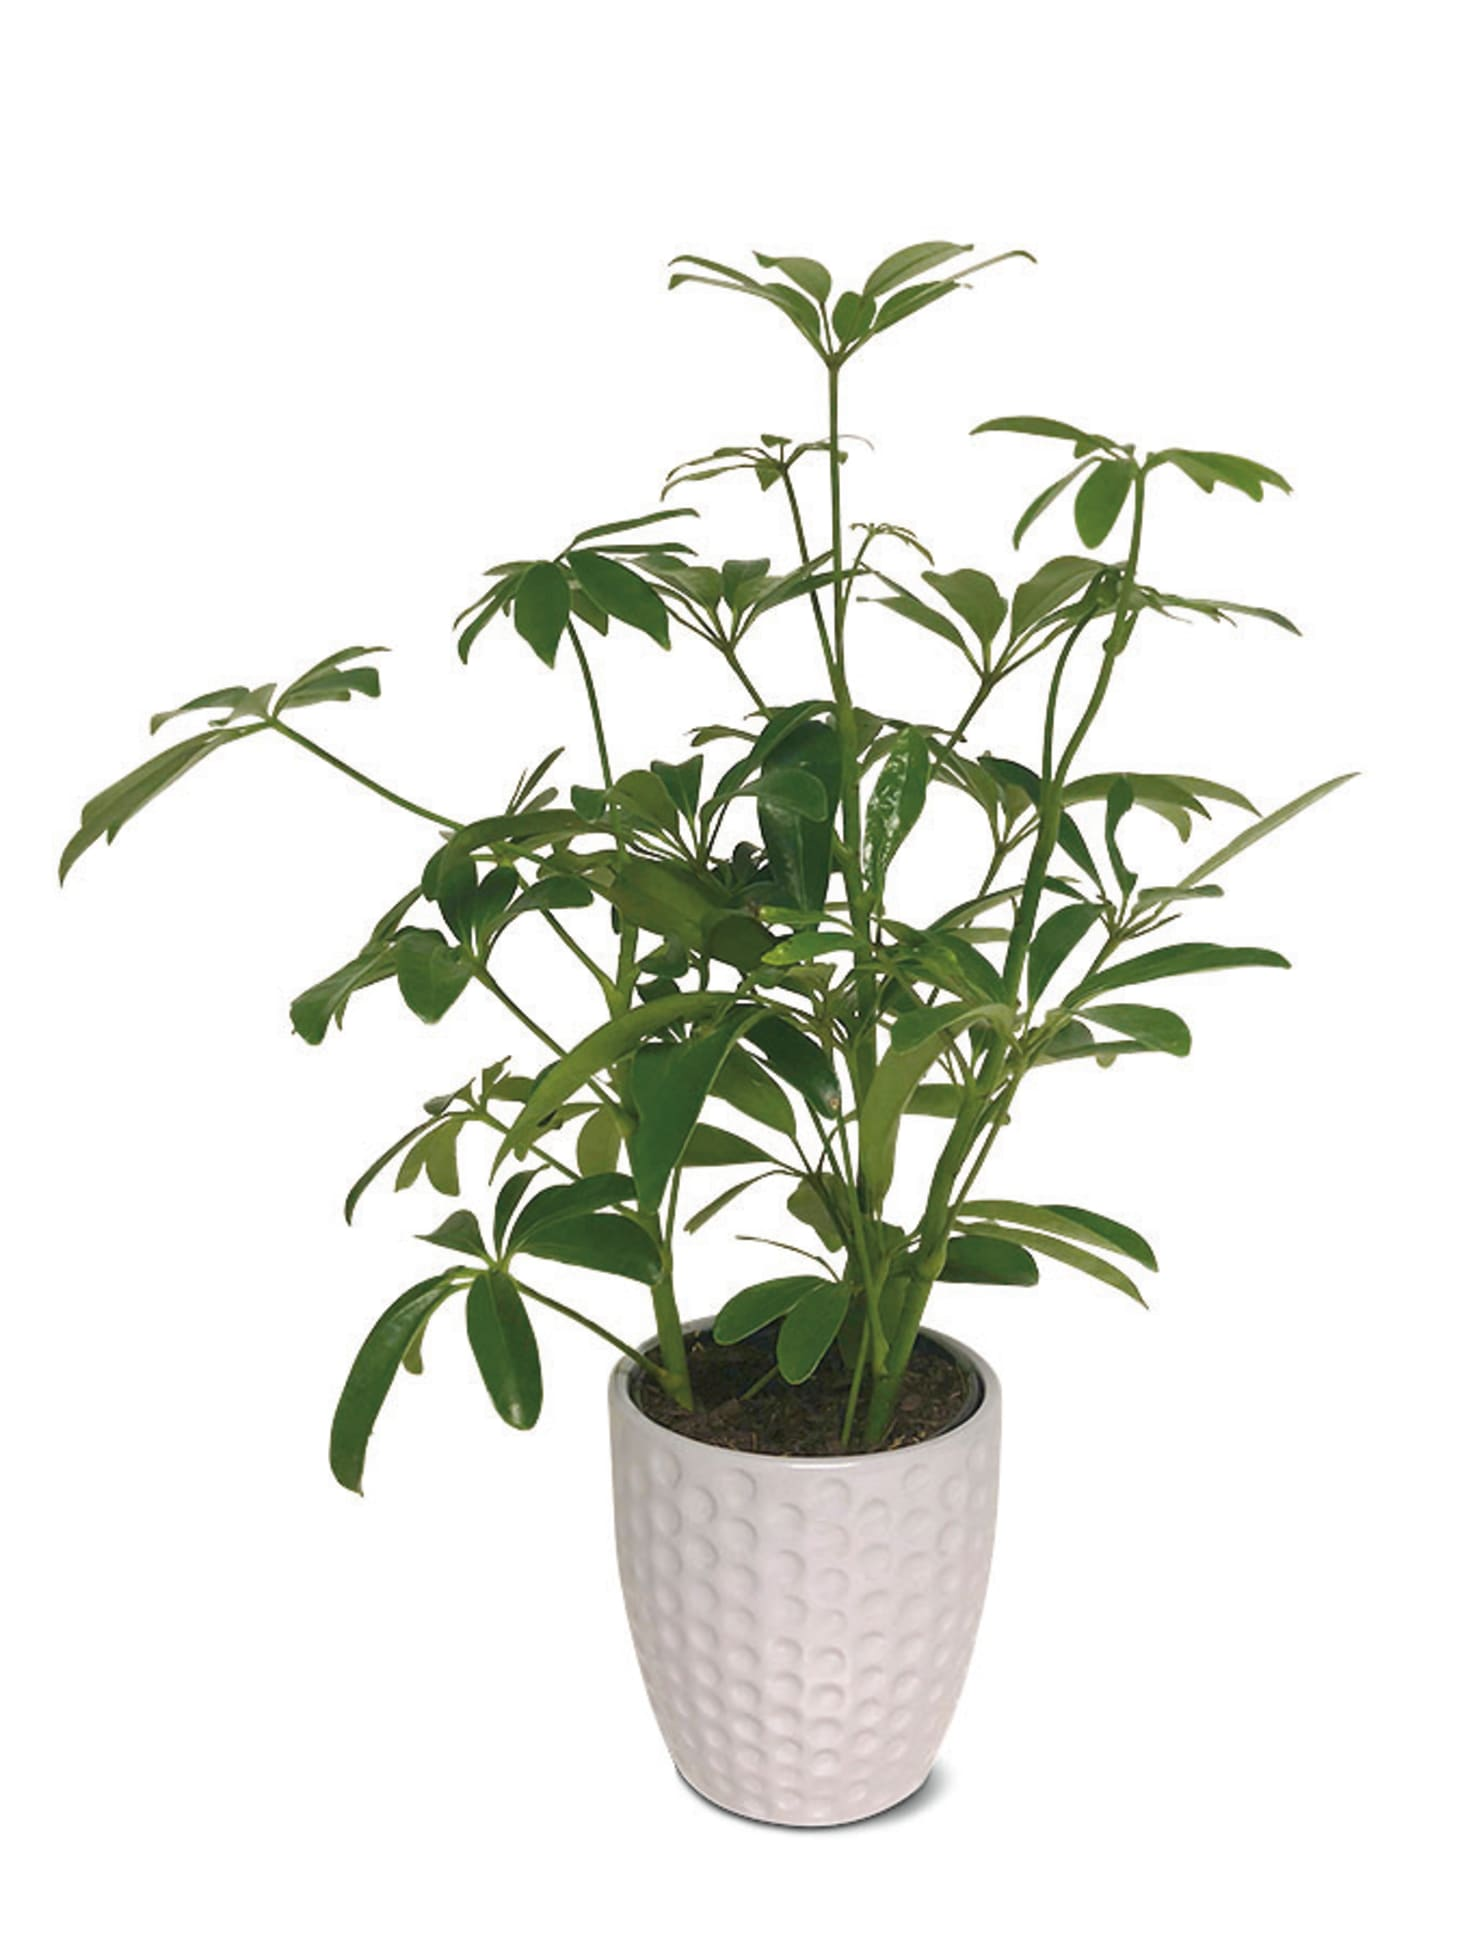 Aldi Potted Plants Deal | Apartment Therapy